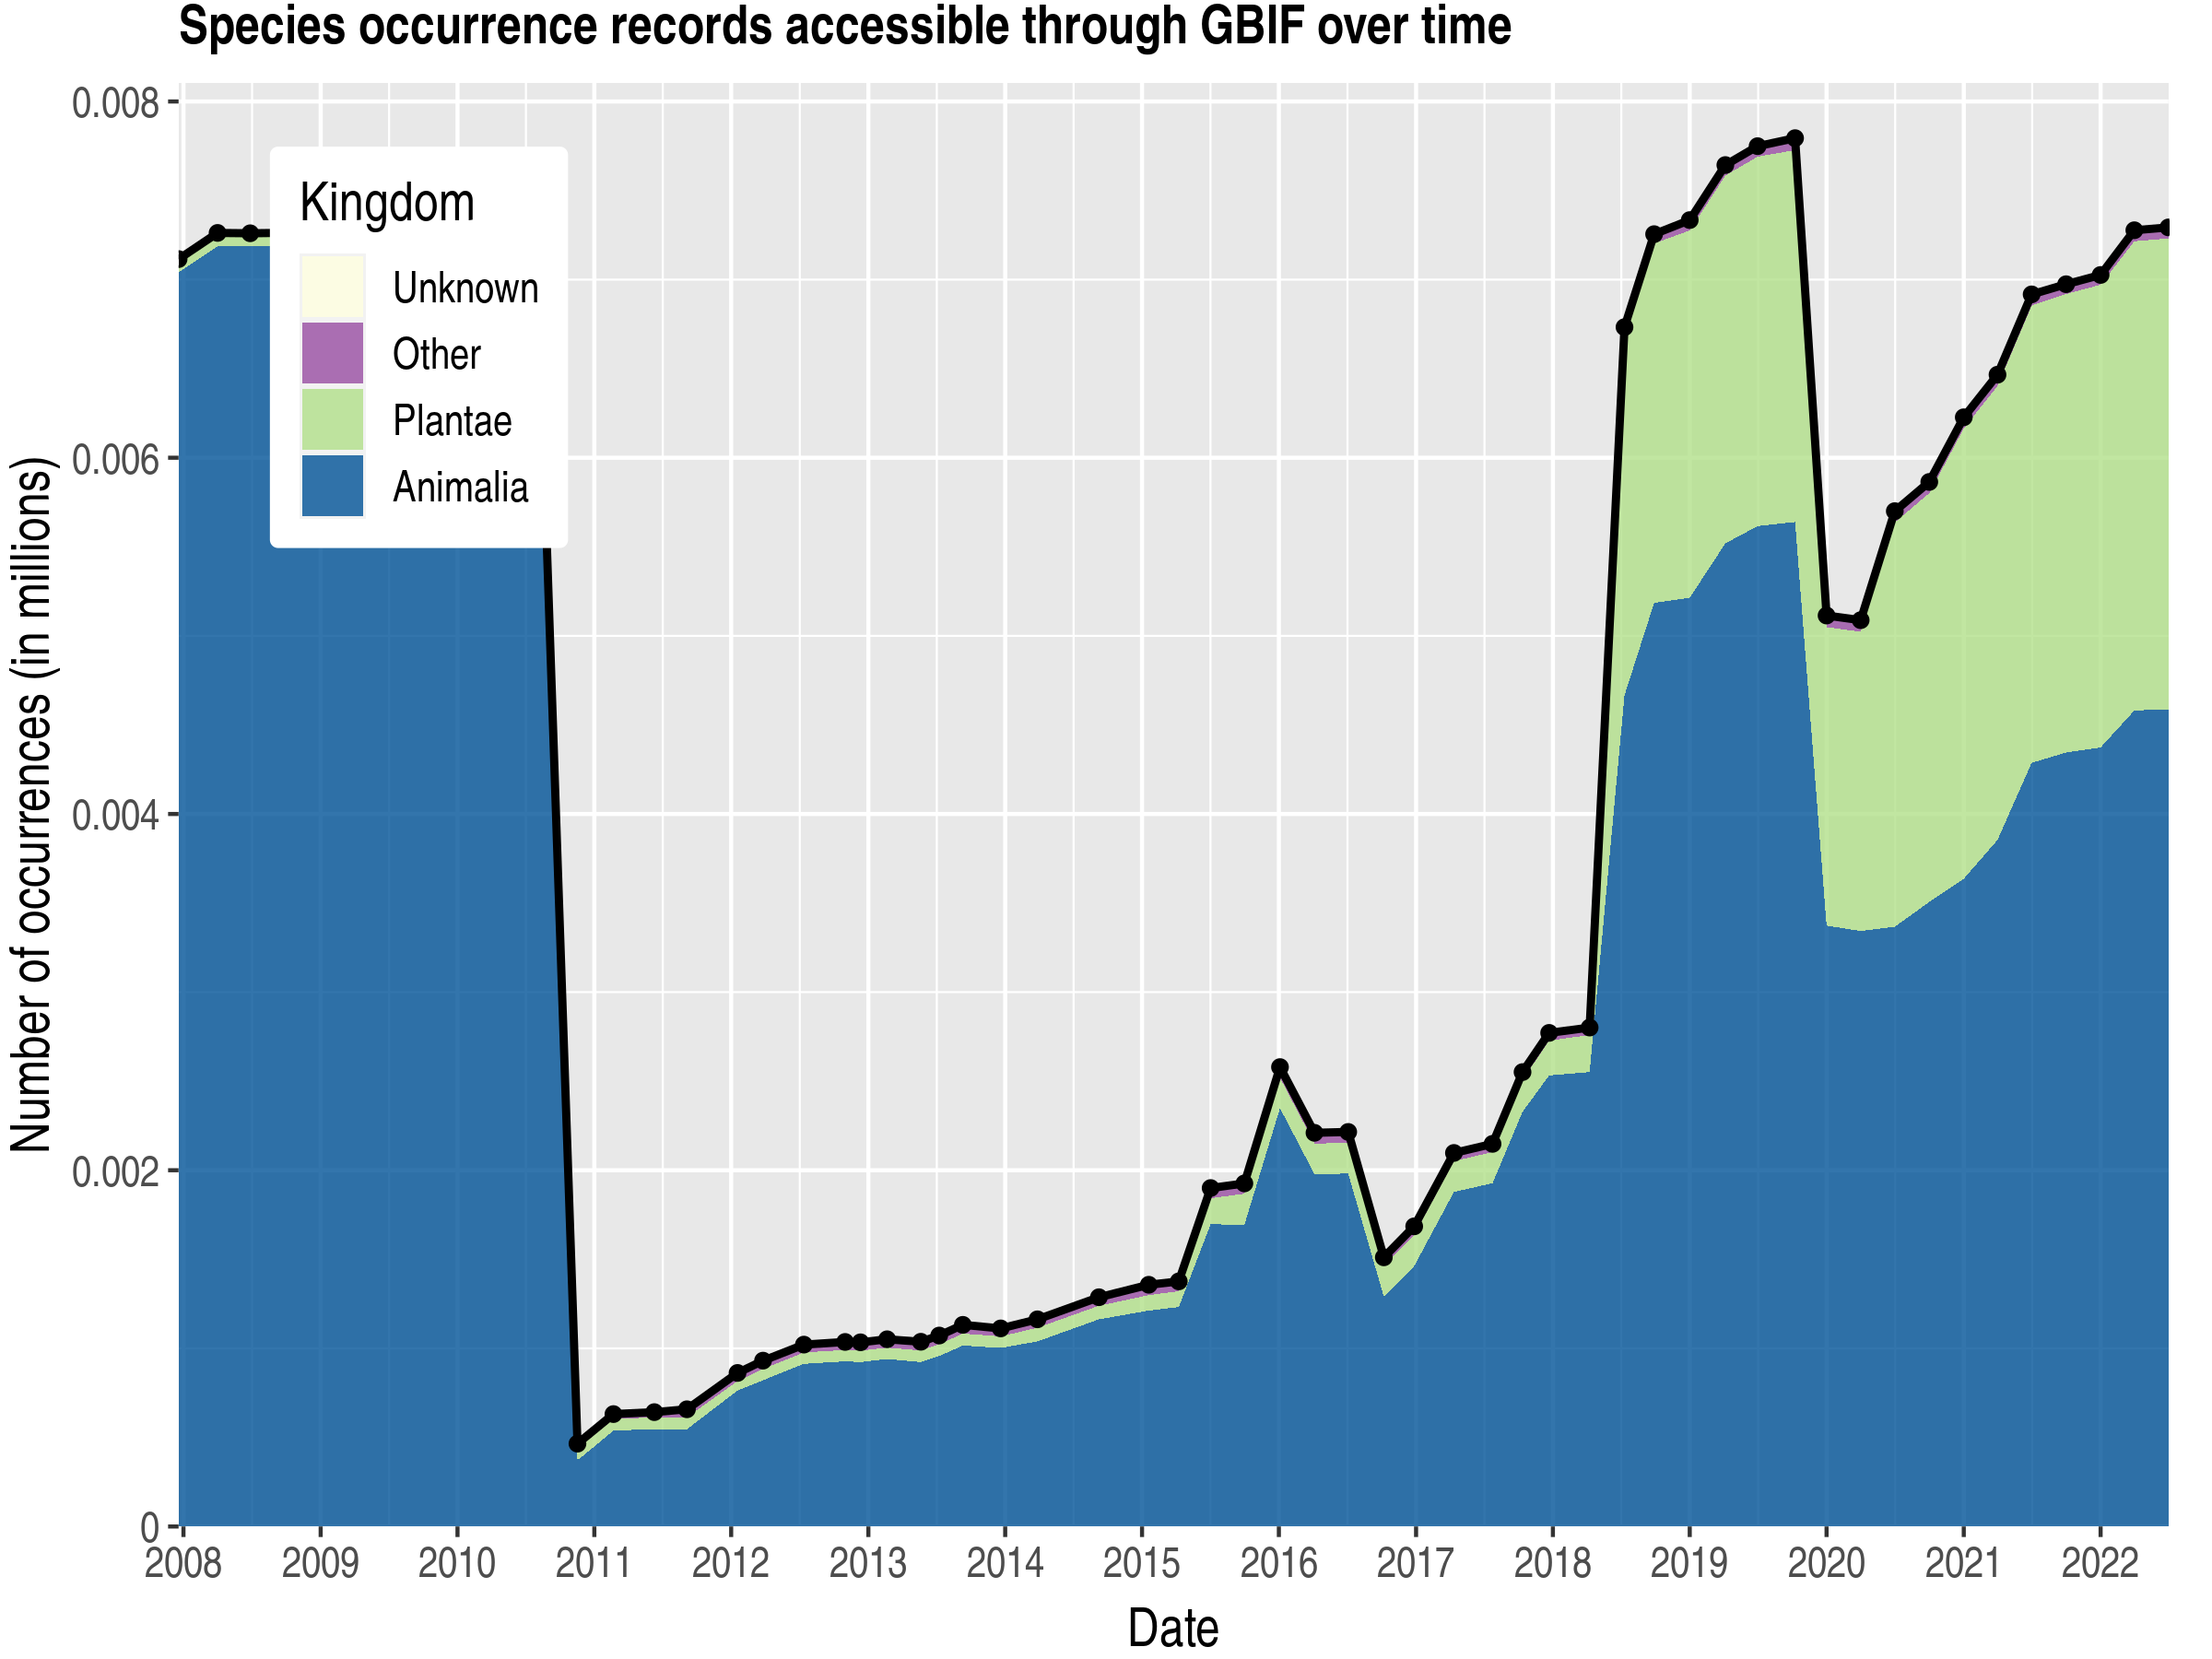 Data trend of records by kingdom about Monaco